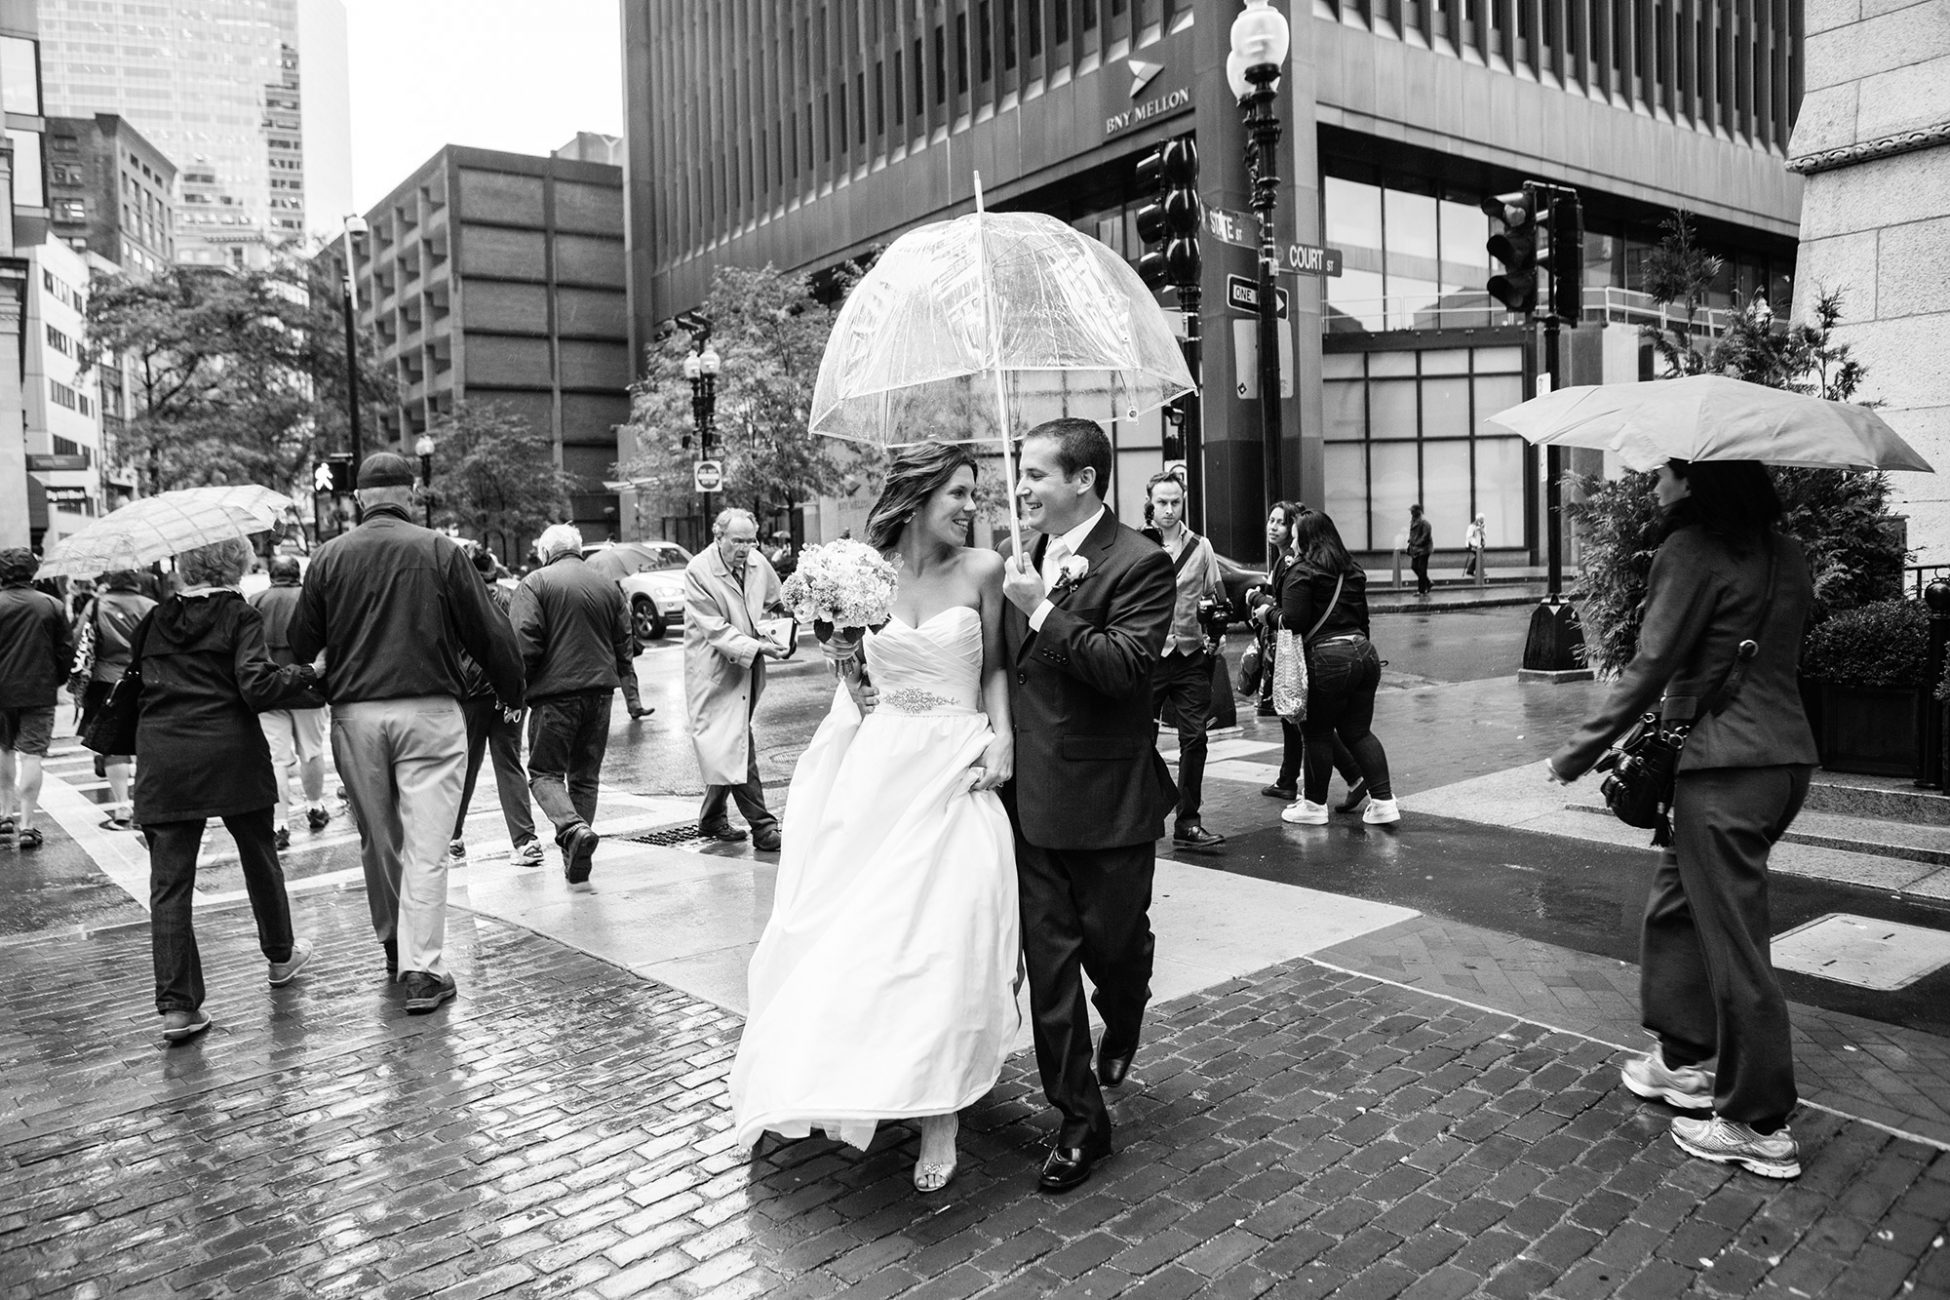 a newly married couples walks to their state room wedding with an umbrella